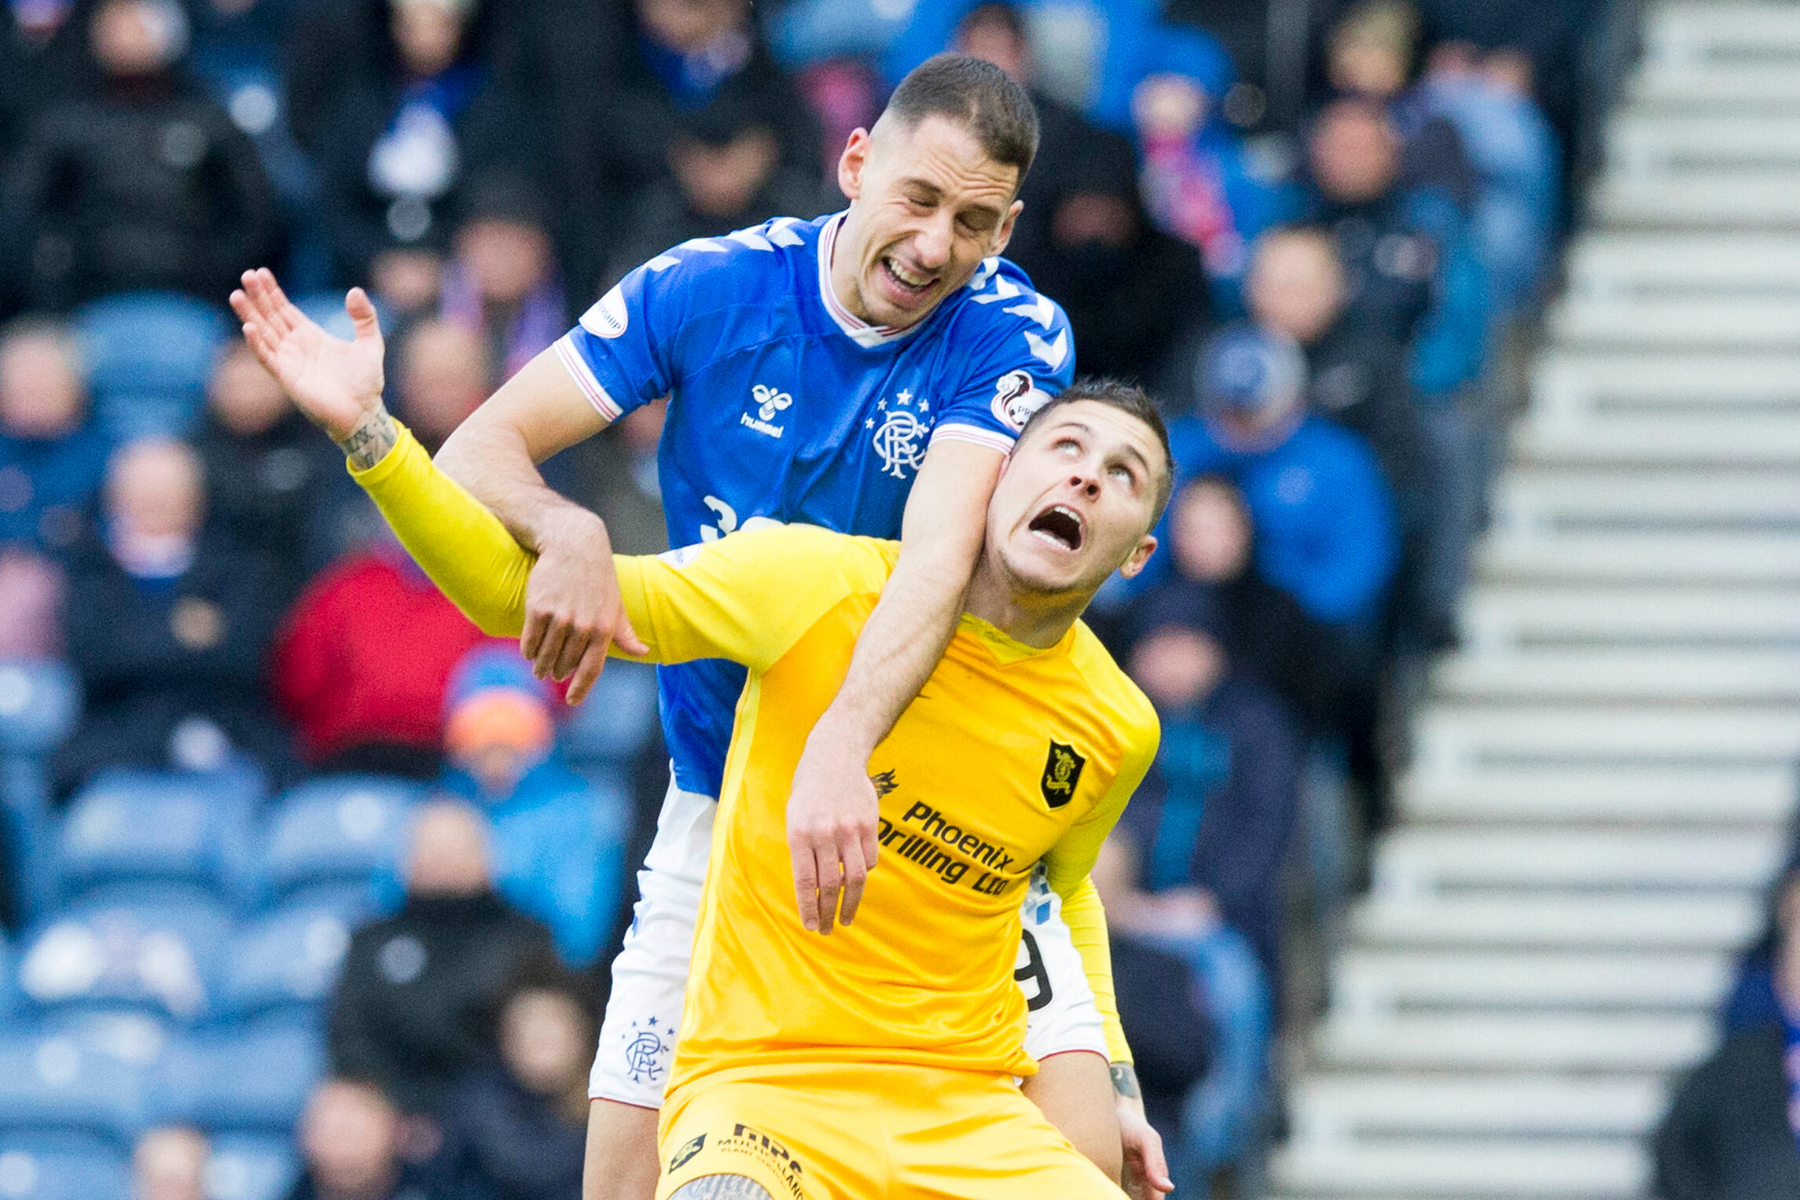 Rangers linked Lyndon Dykes will leave Livingston this summer if suitors meet asking price